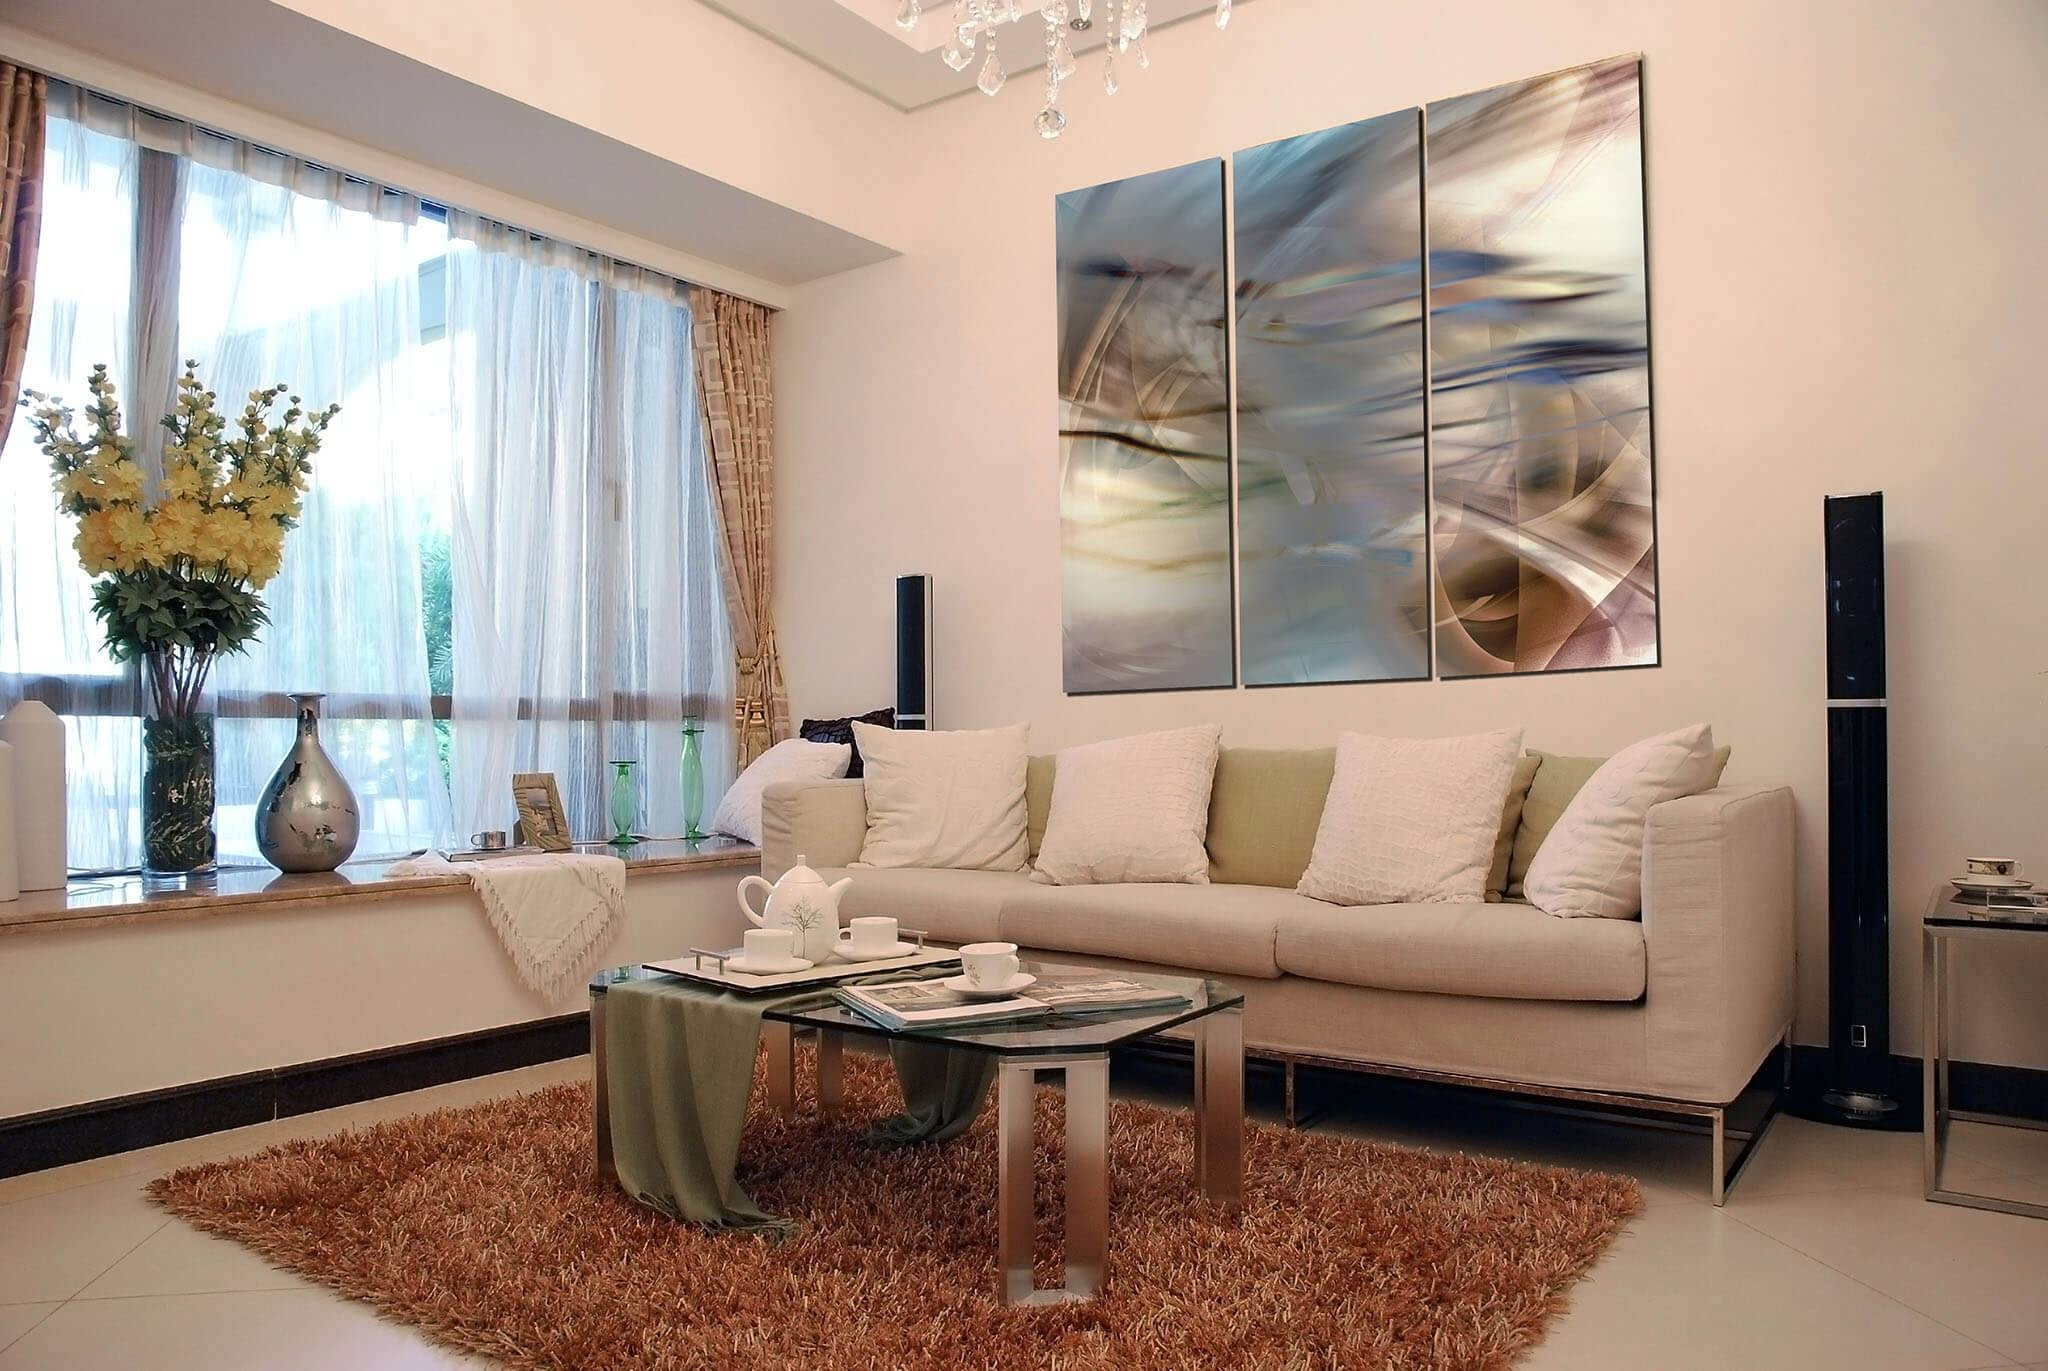 Best ideas about Large Wall Art For Living Room . Save or Pin 20 Best Collection of Framed Wall Art Now.